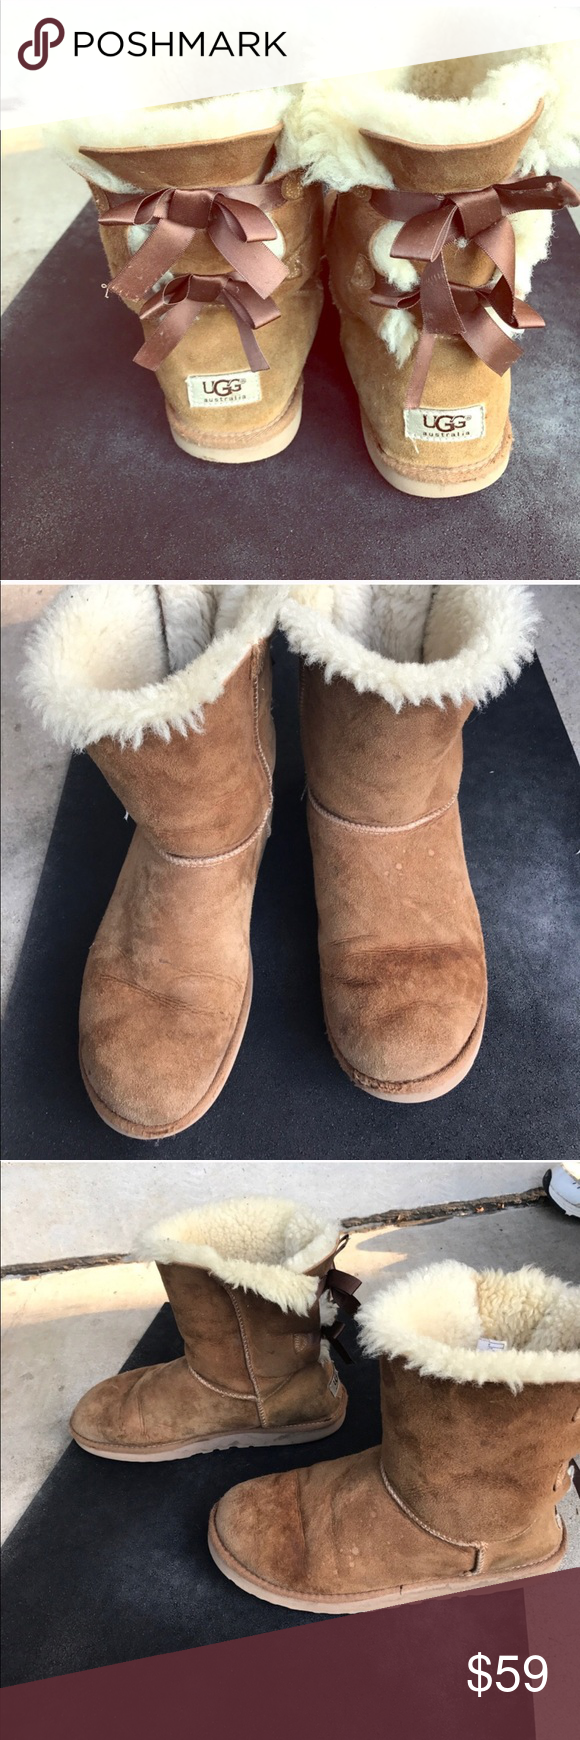 bailey bow uggs worn condition but still have life left! UGG Shoes Ankle Boots & Booties